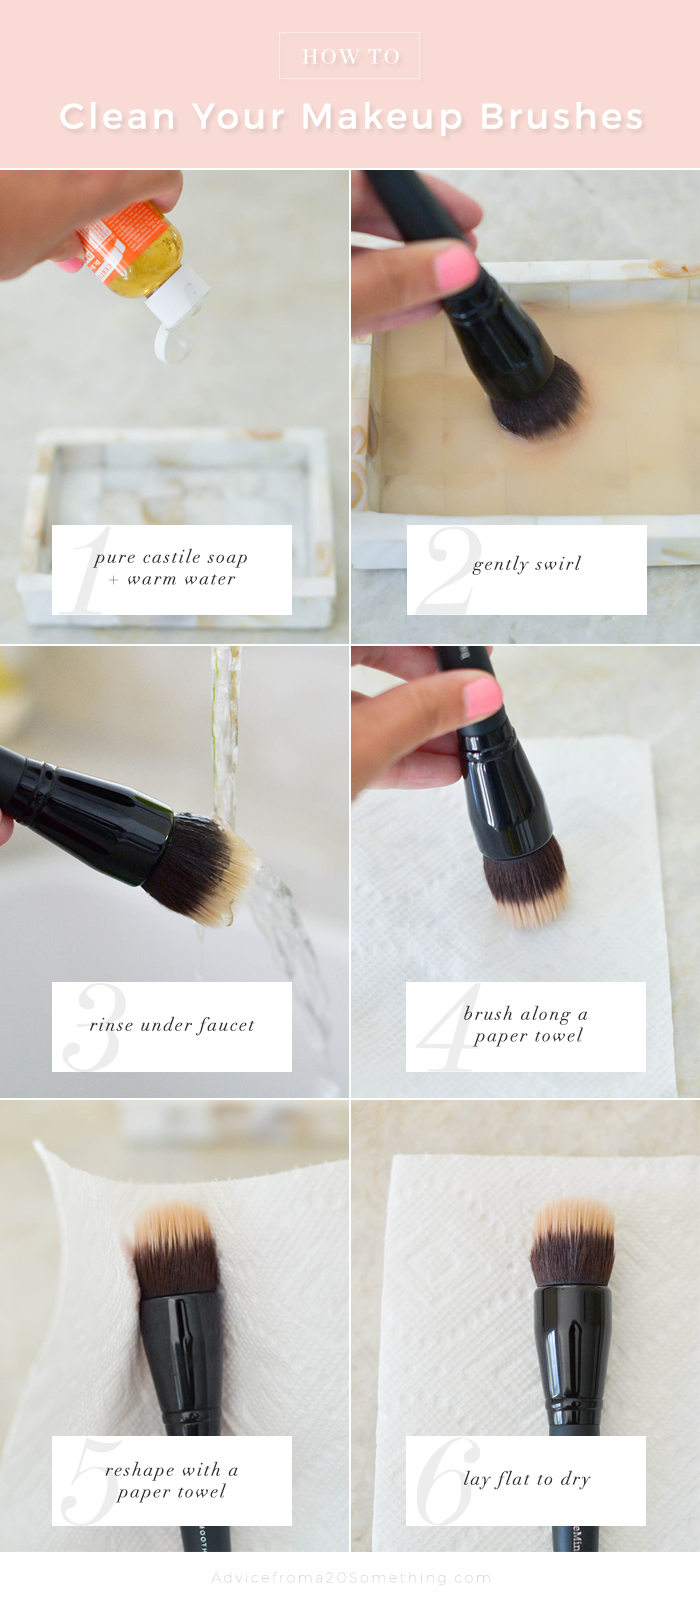 The Right Way To Clean Your MakeupBrushes The Right Way To Clean Your MakeupBrushes new photo